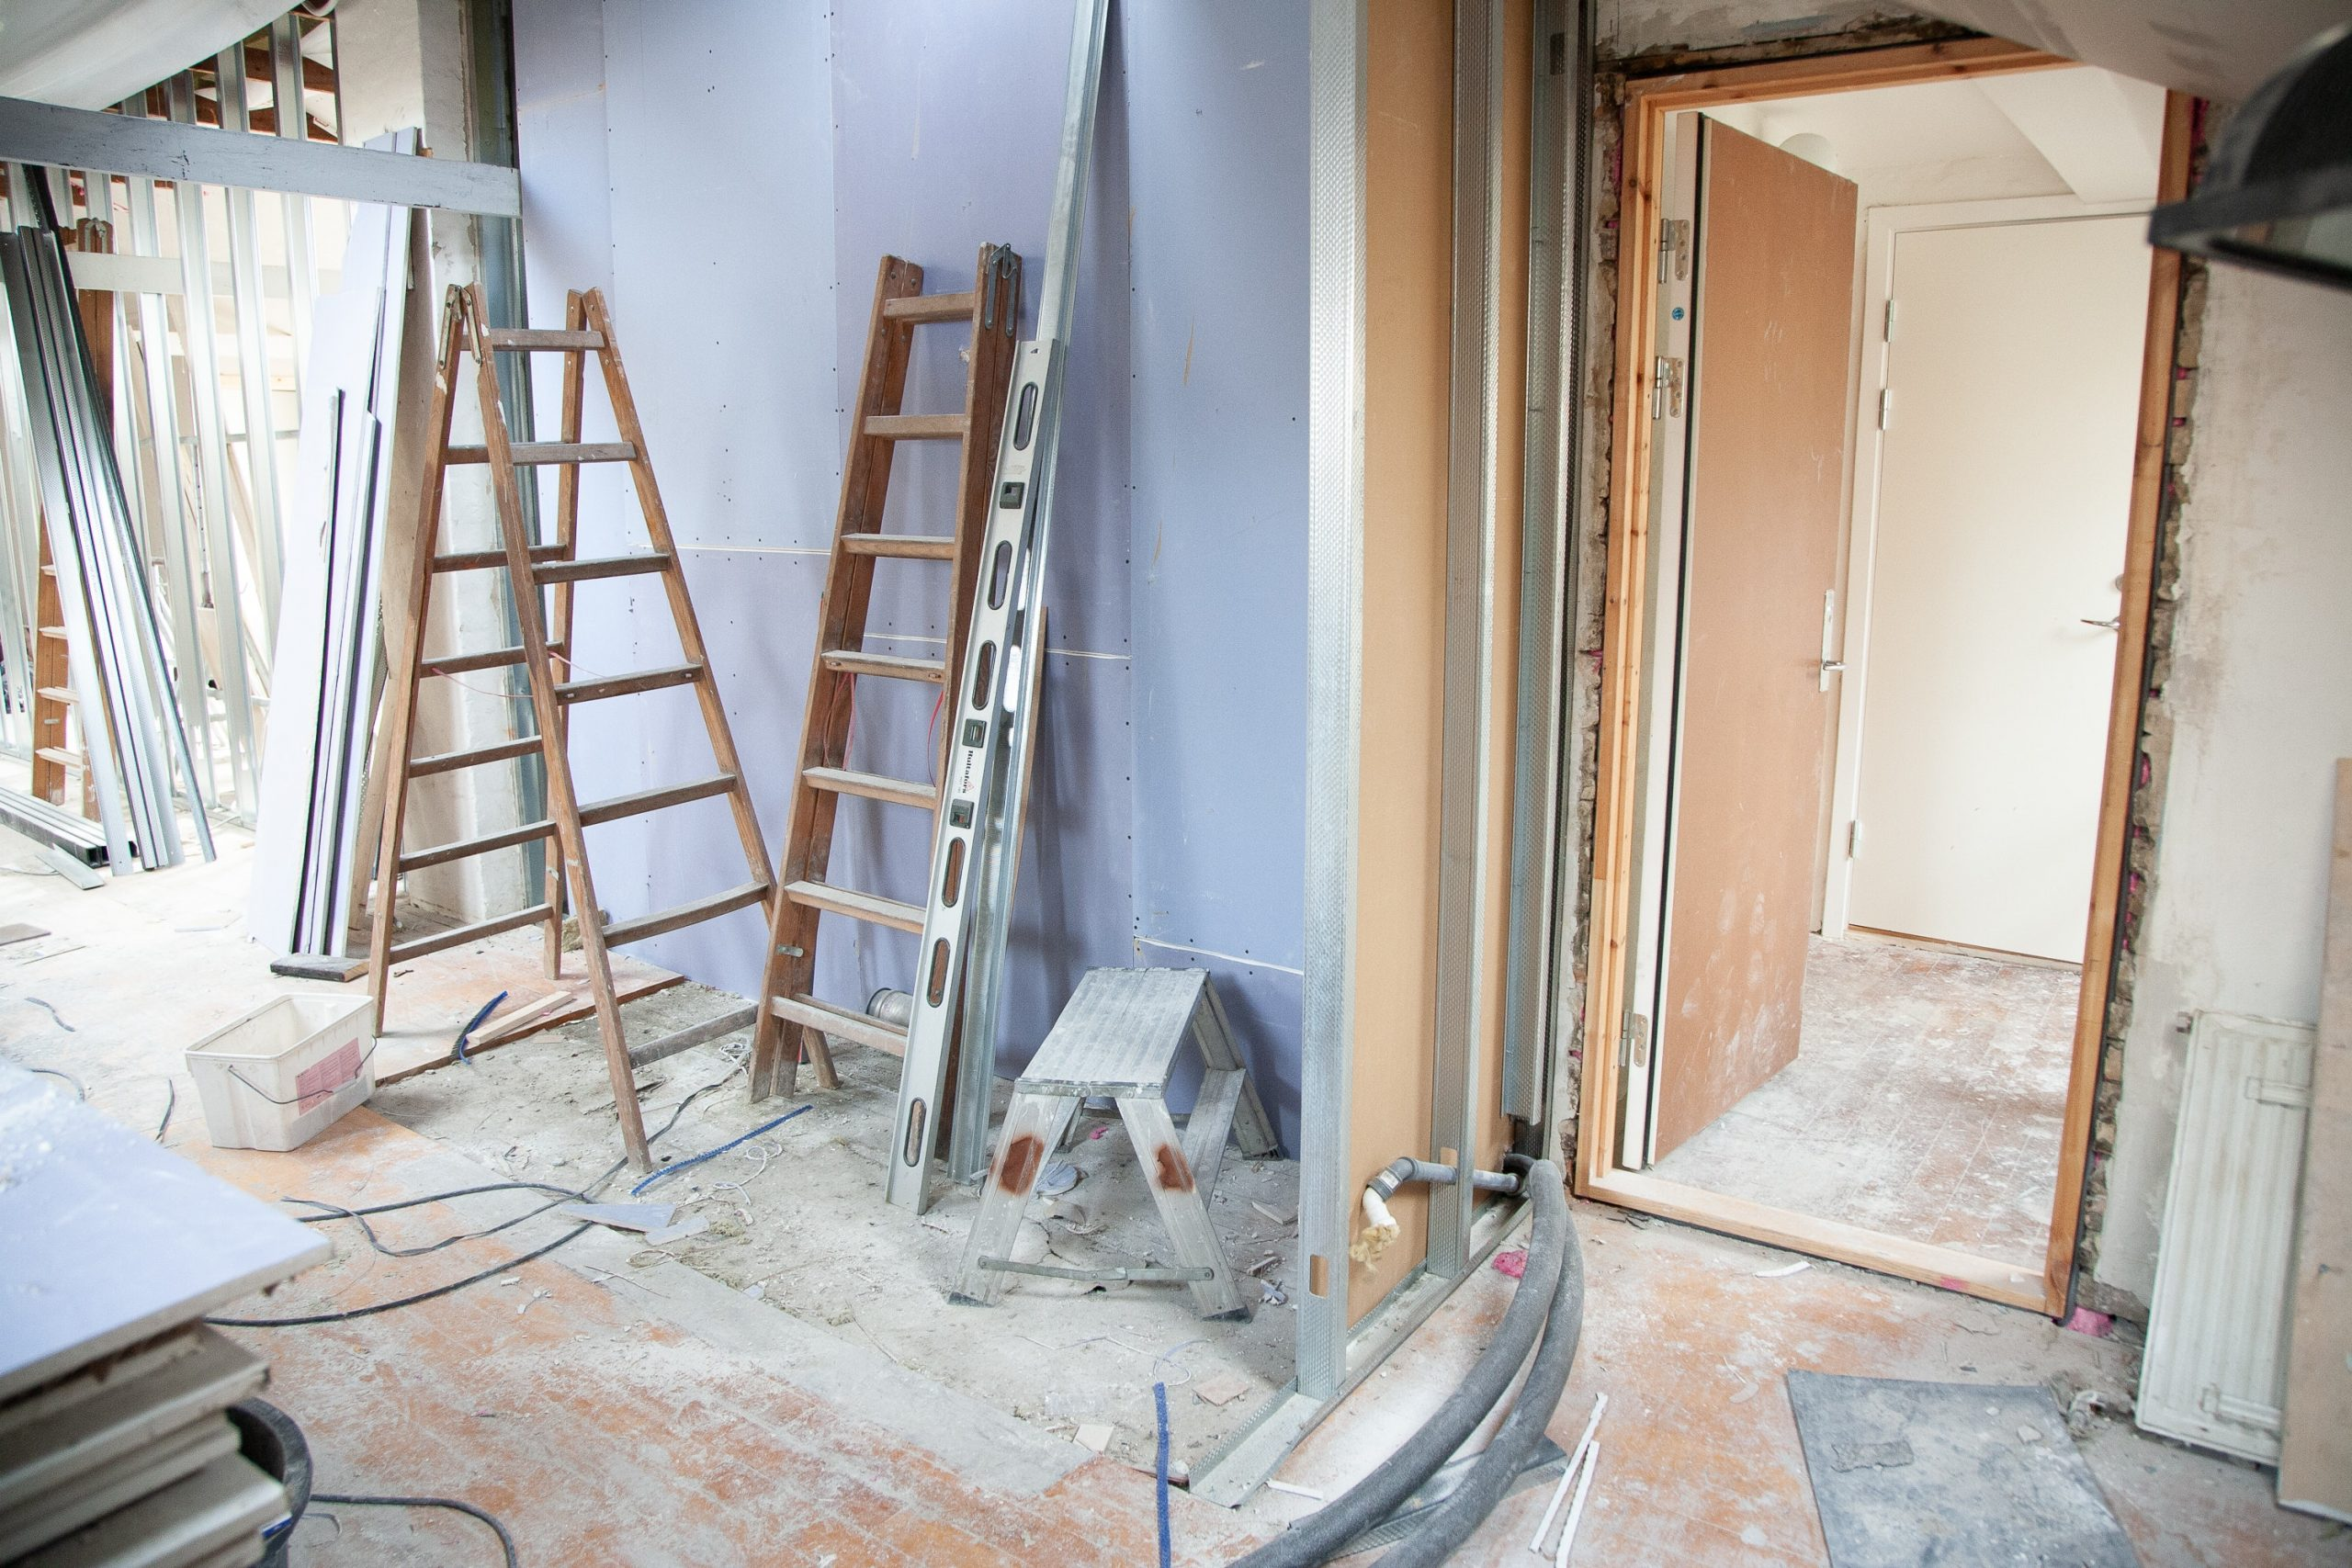 two pairs of step ladders in a room renovation; Considering Home Renovations 4 Tips on How To Prepare